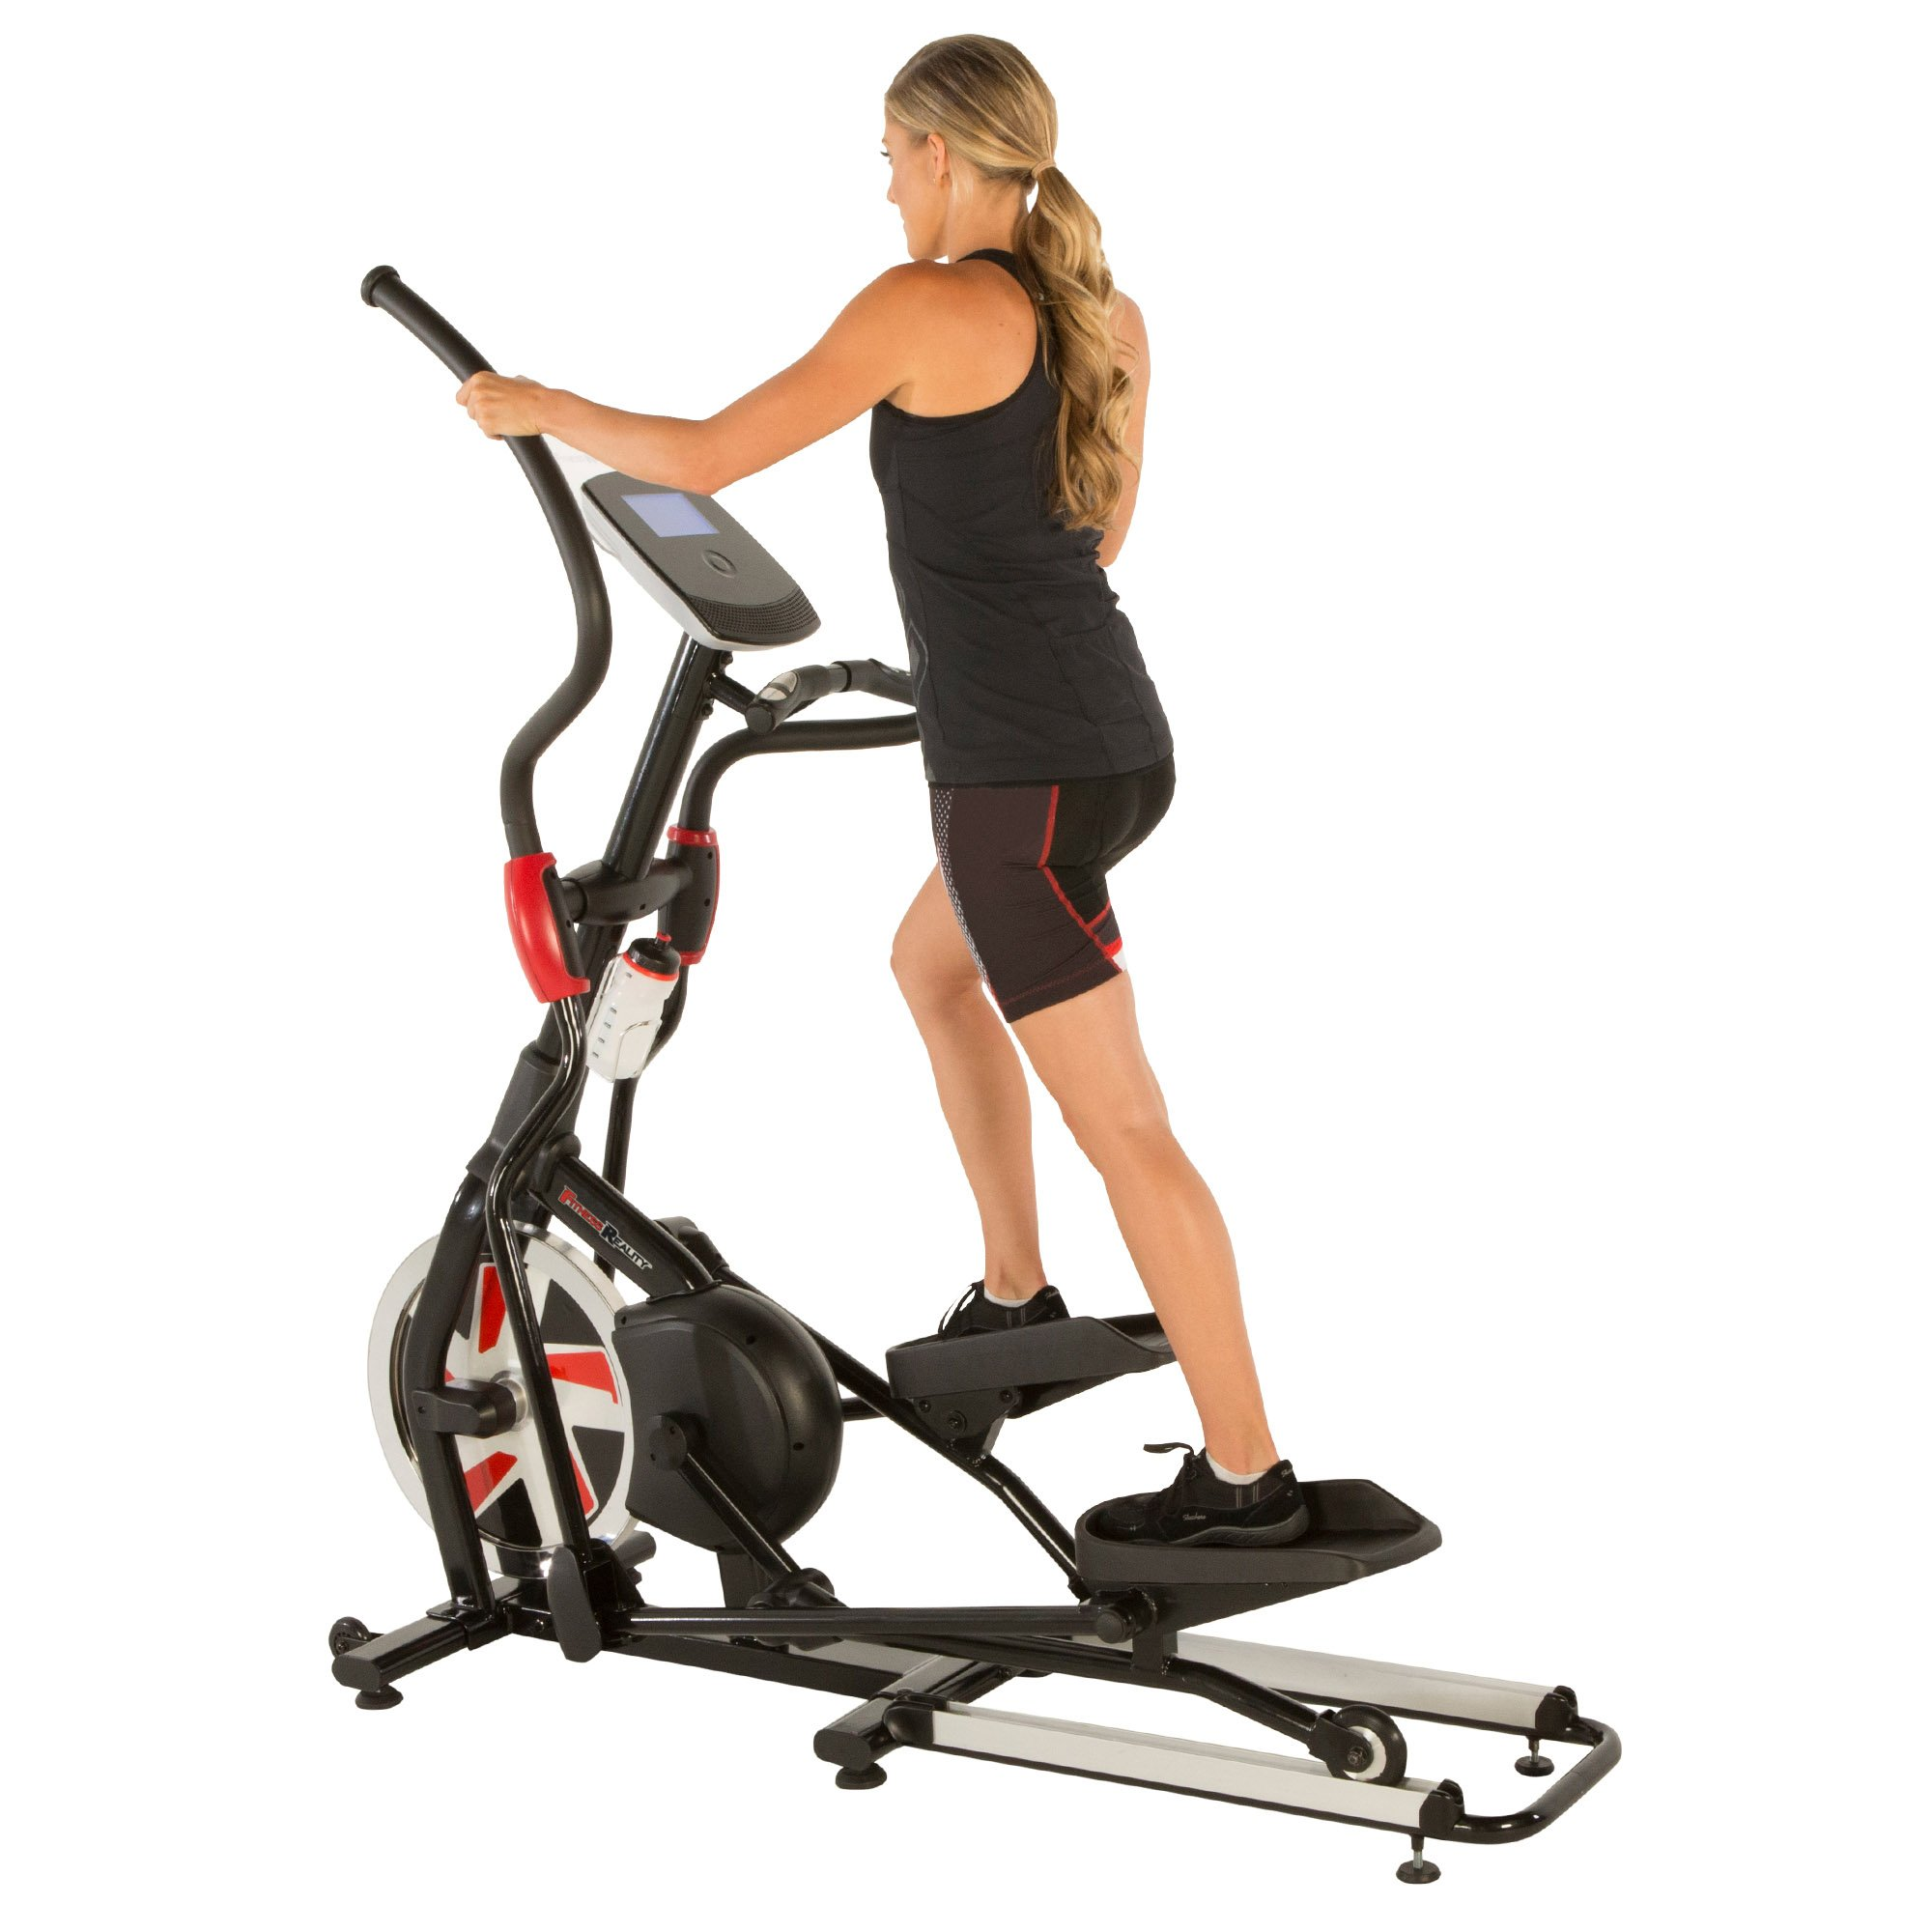 Fitness Reality X-Class 710 Bluetooth Smart Technology Elliptical Trainer with Flywheel Turbo Drive by Fitness Reality